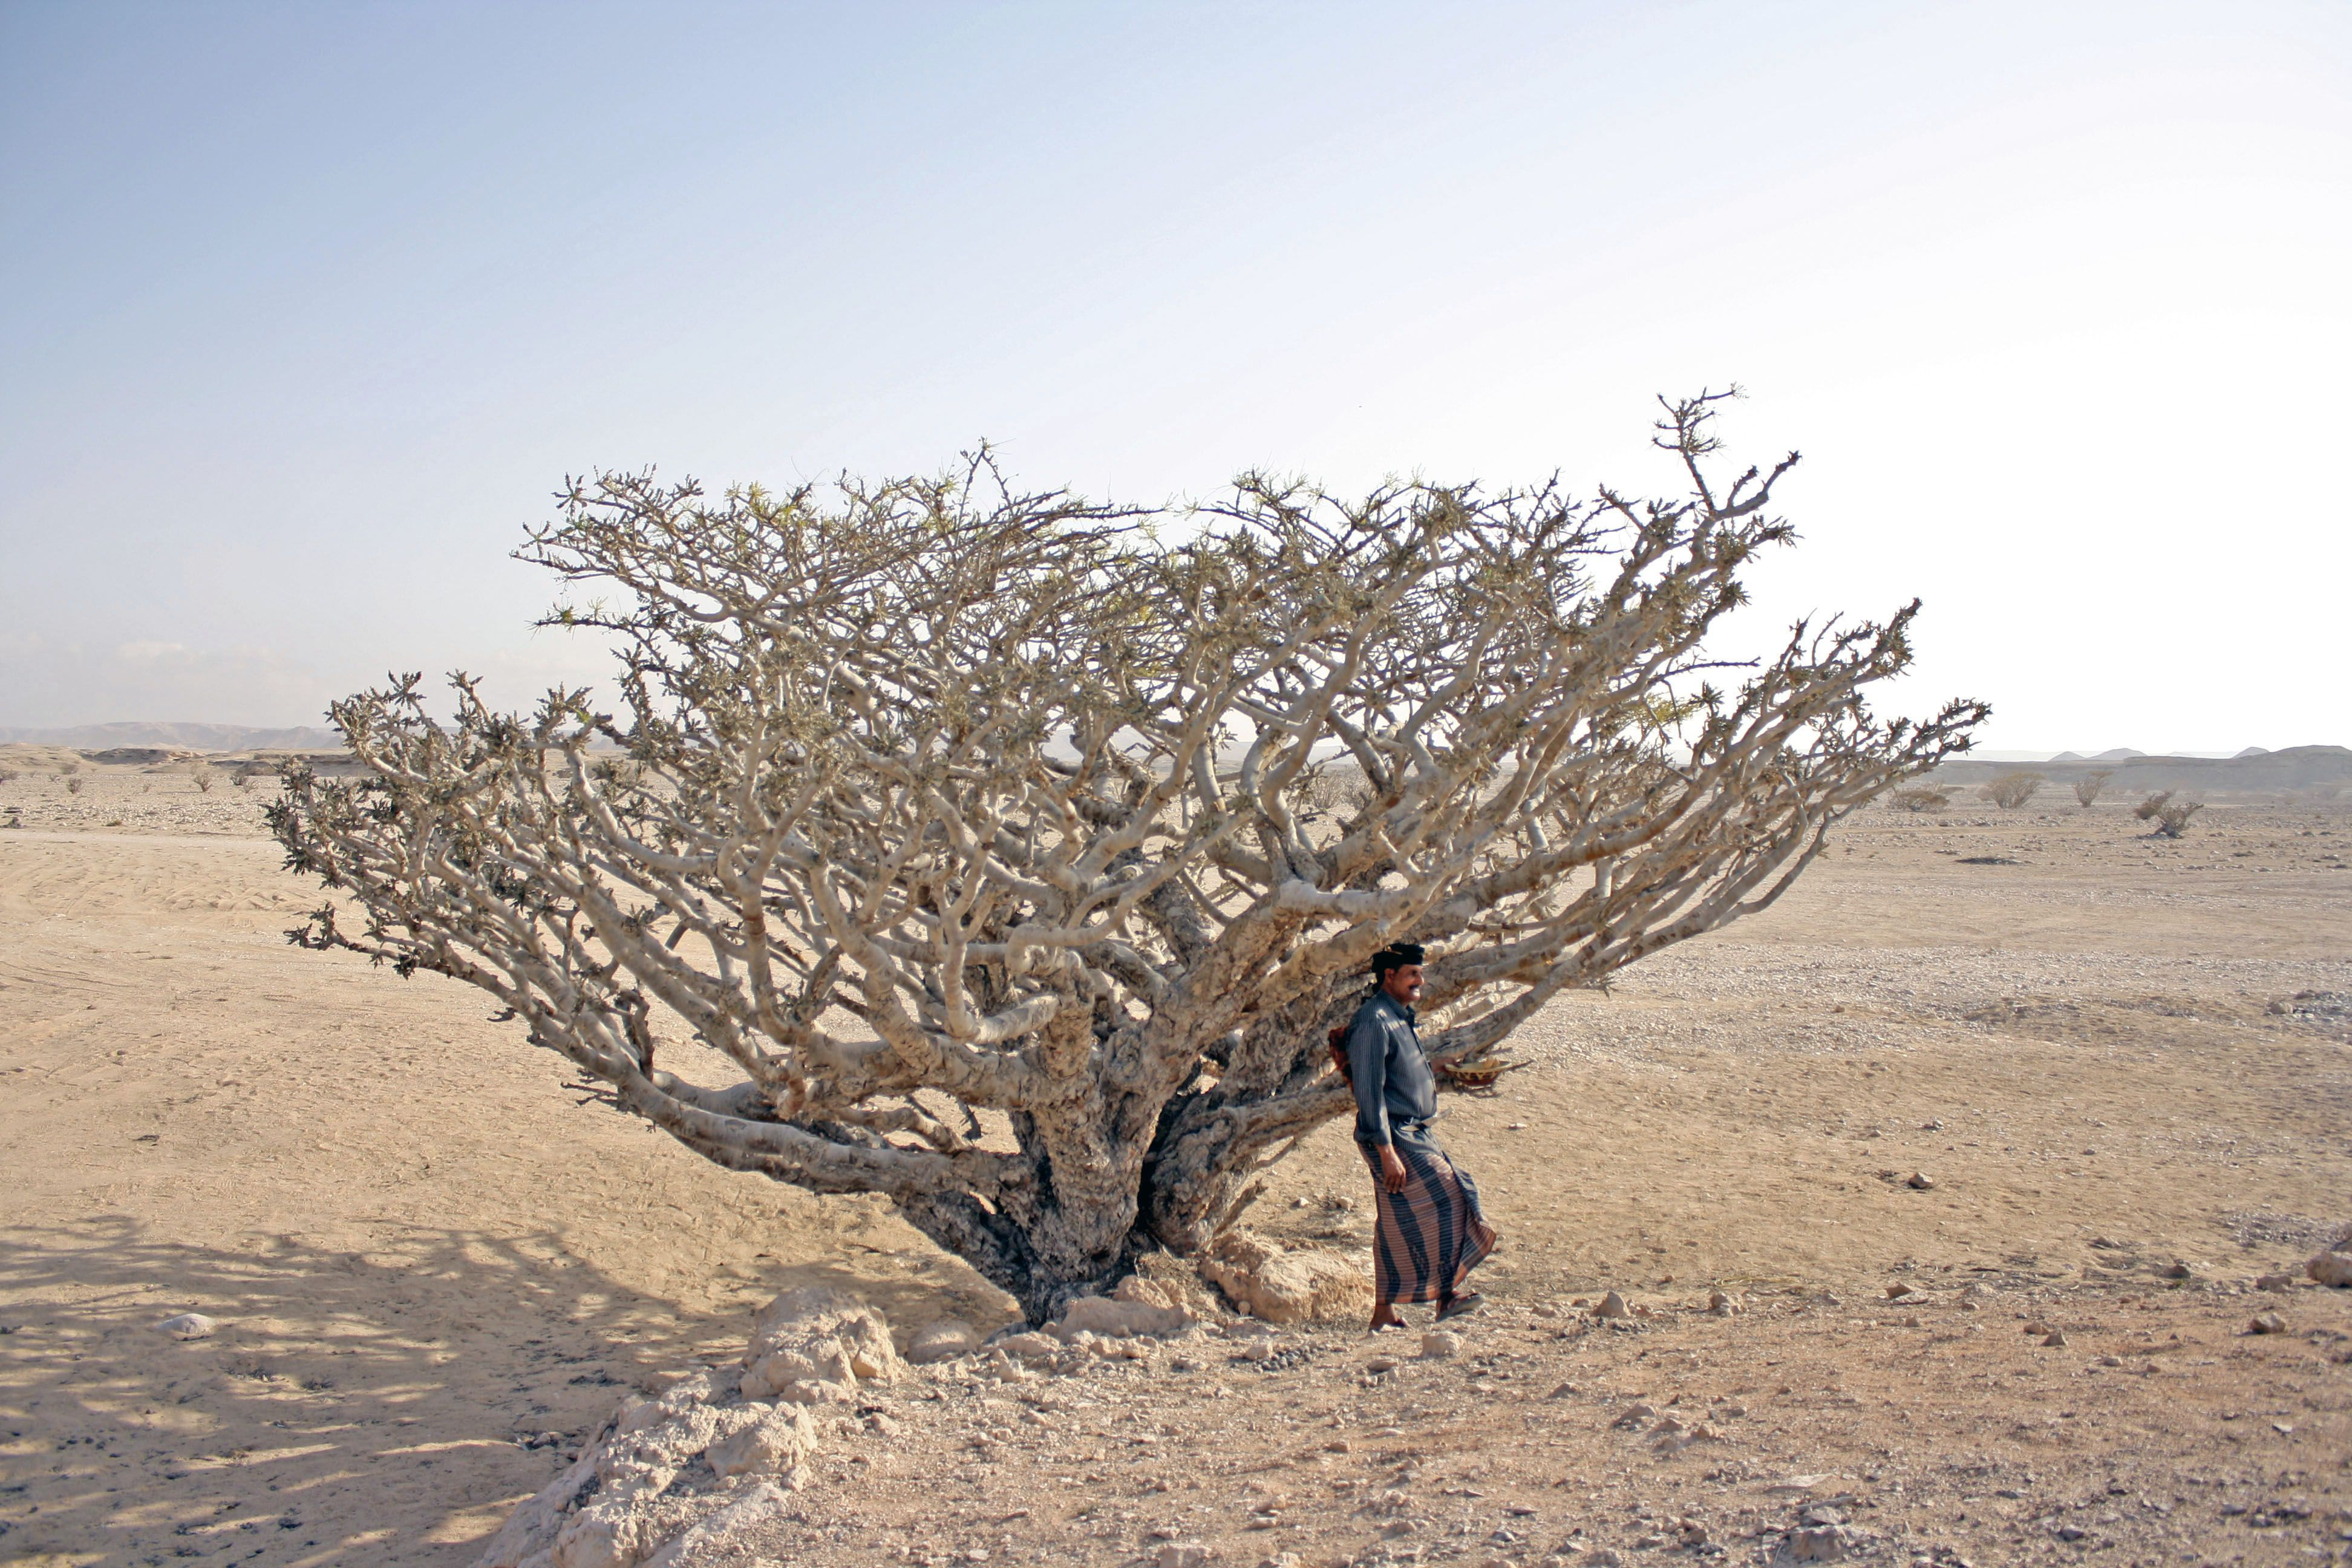 Frankincense Oman S White Gold Loses Its Lustre In A